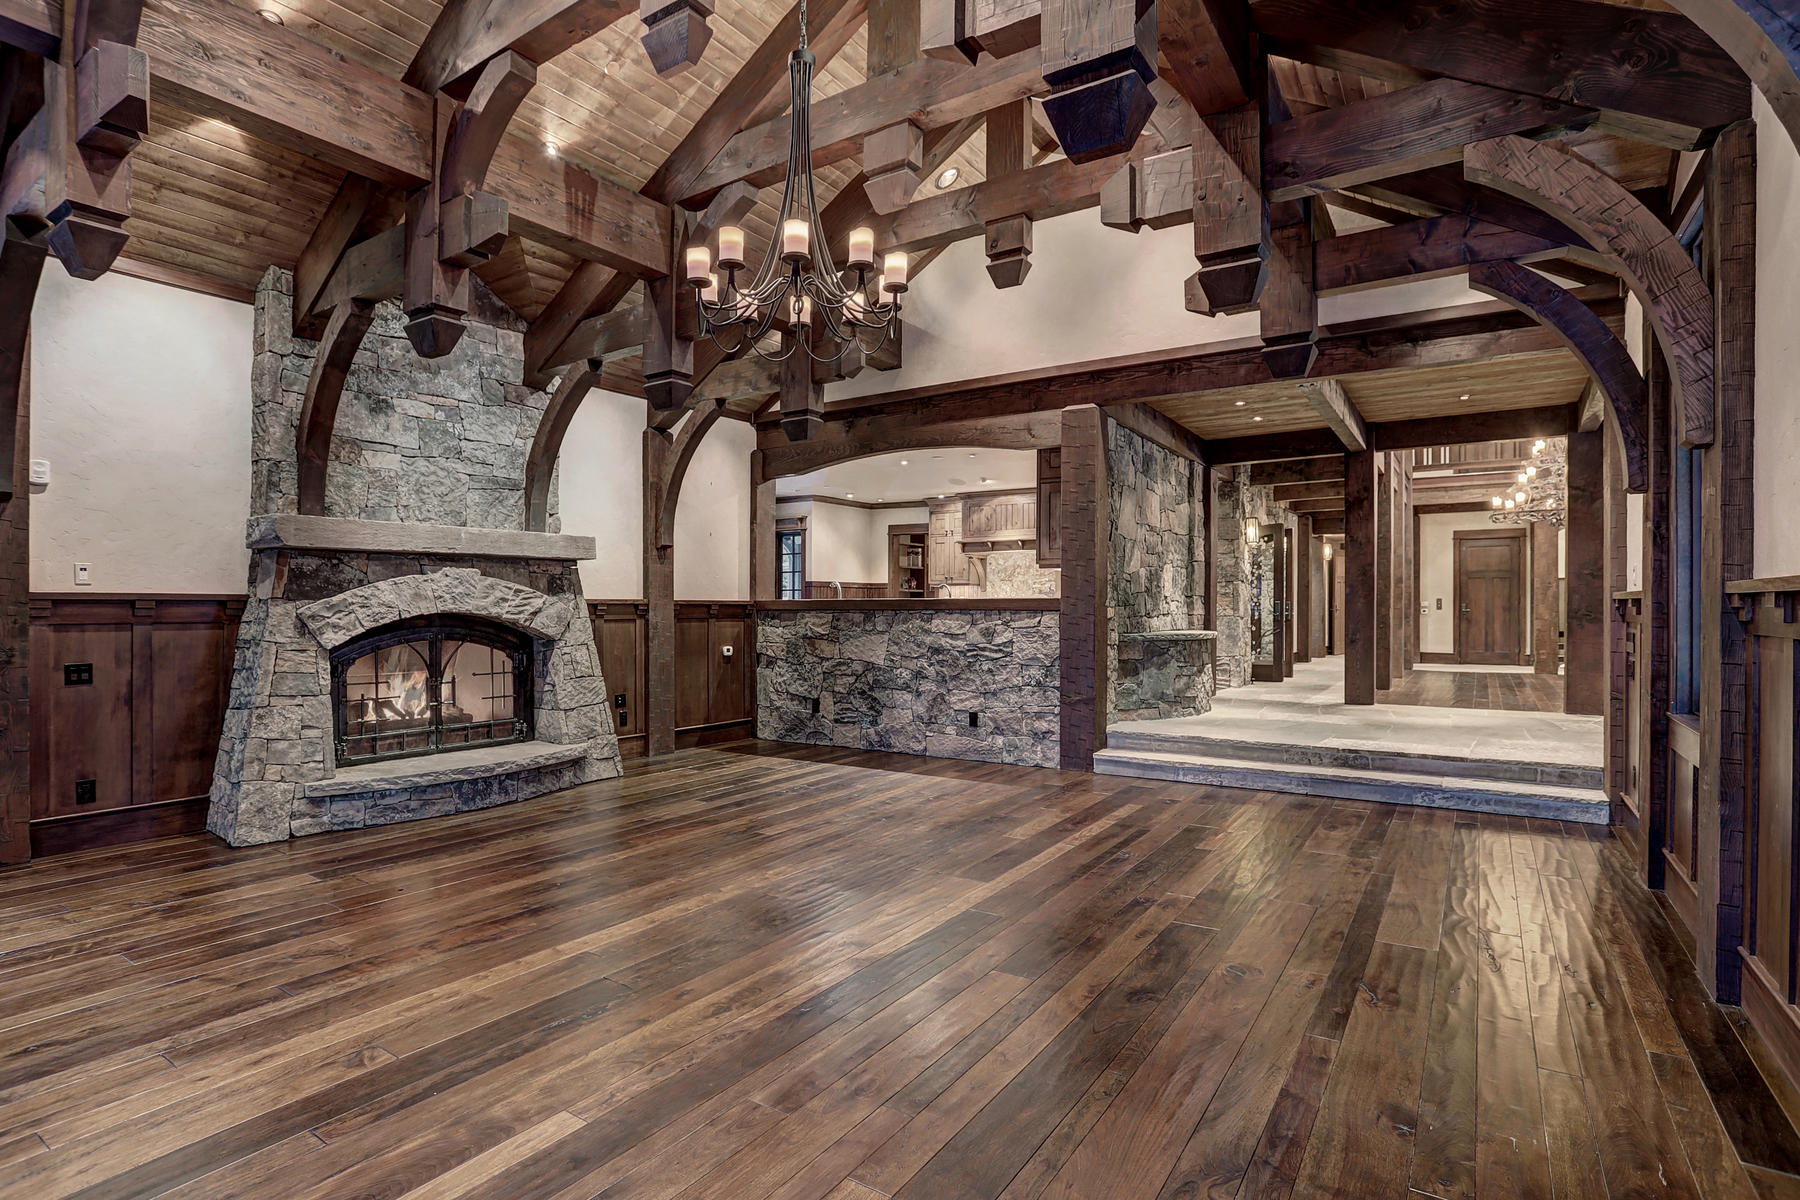 Additional photo for property listing at A One of a Kind Breckenridge Estate 33 Iron Mask Road Breckenridge, Colorado 80424 United States